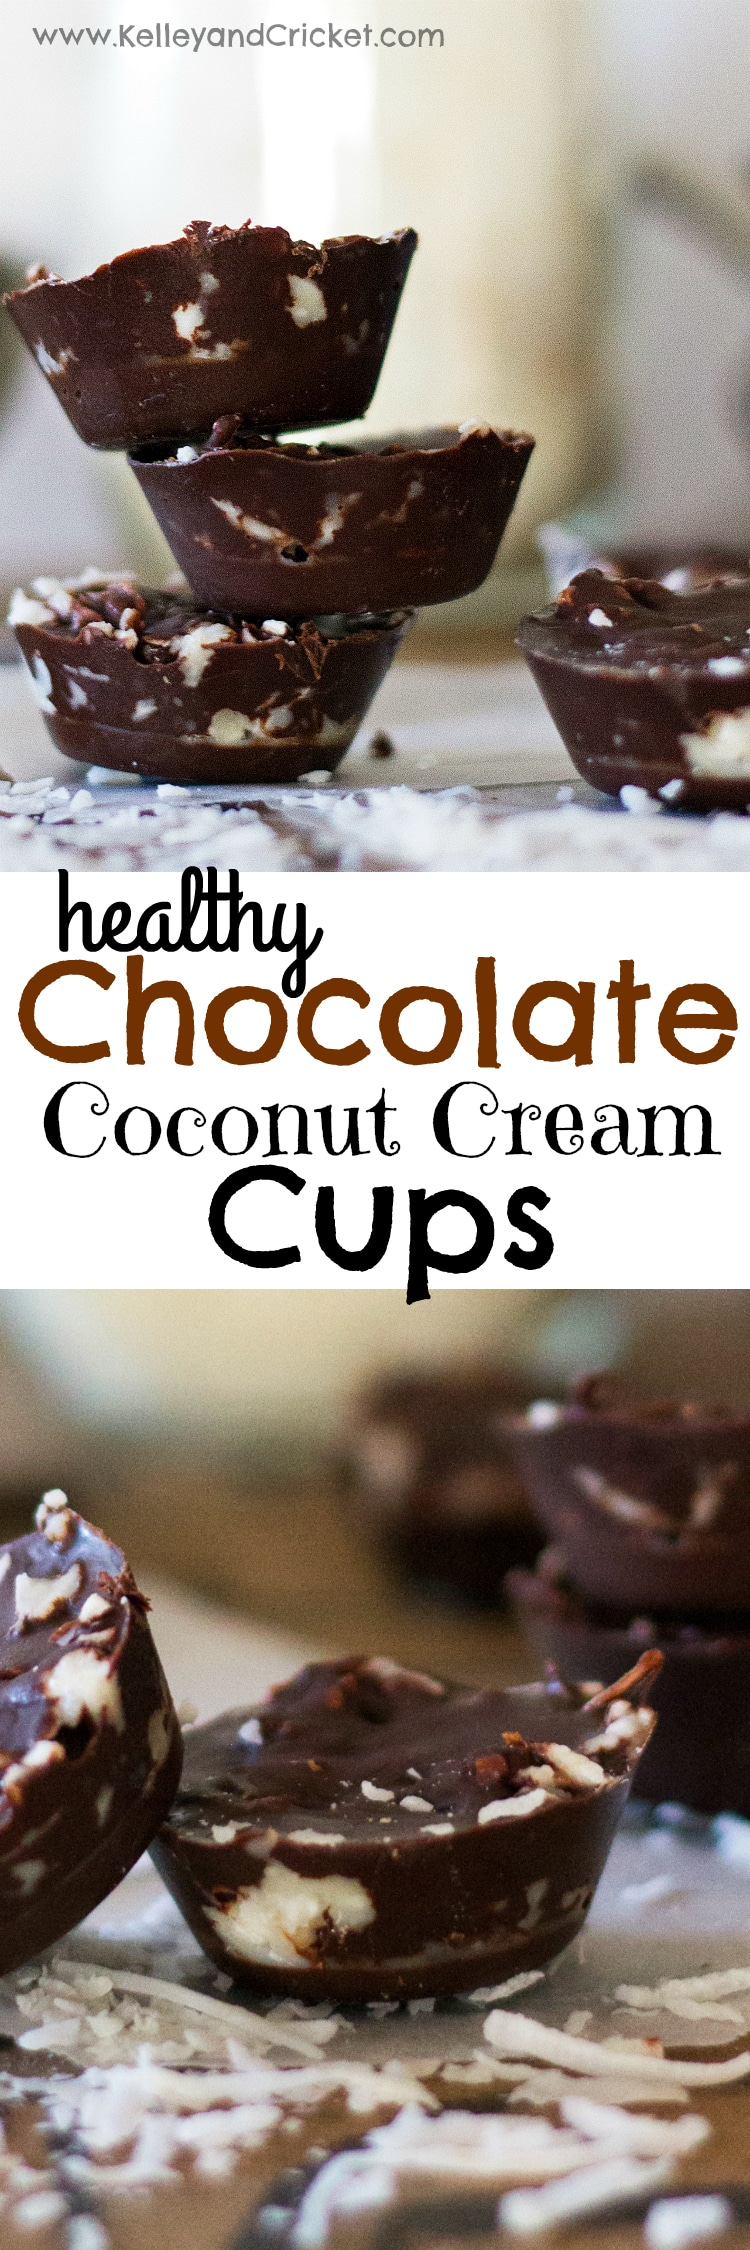 These creamy, rich, and chocolatey Coconut Cream Cups are the ultimate decandent (and secretly healthy!!) treat. Pop one of these into your mouth and the rich chocolate melts away to reveal silky, smooth, snowy, and sweet coconut cream. They are easy-peasy to make, and be sure to make extra, for they won't last long!